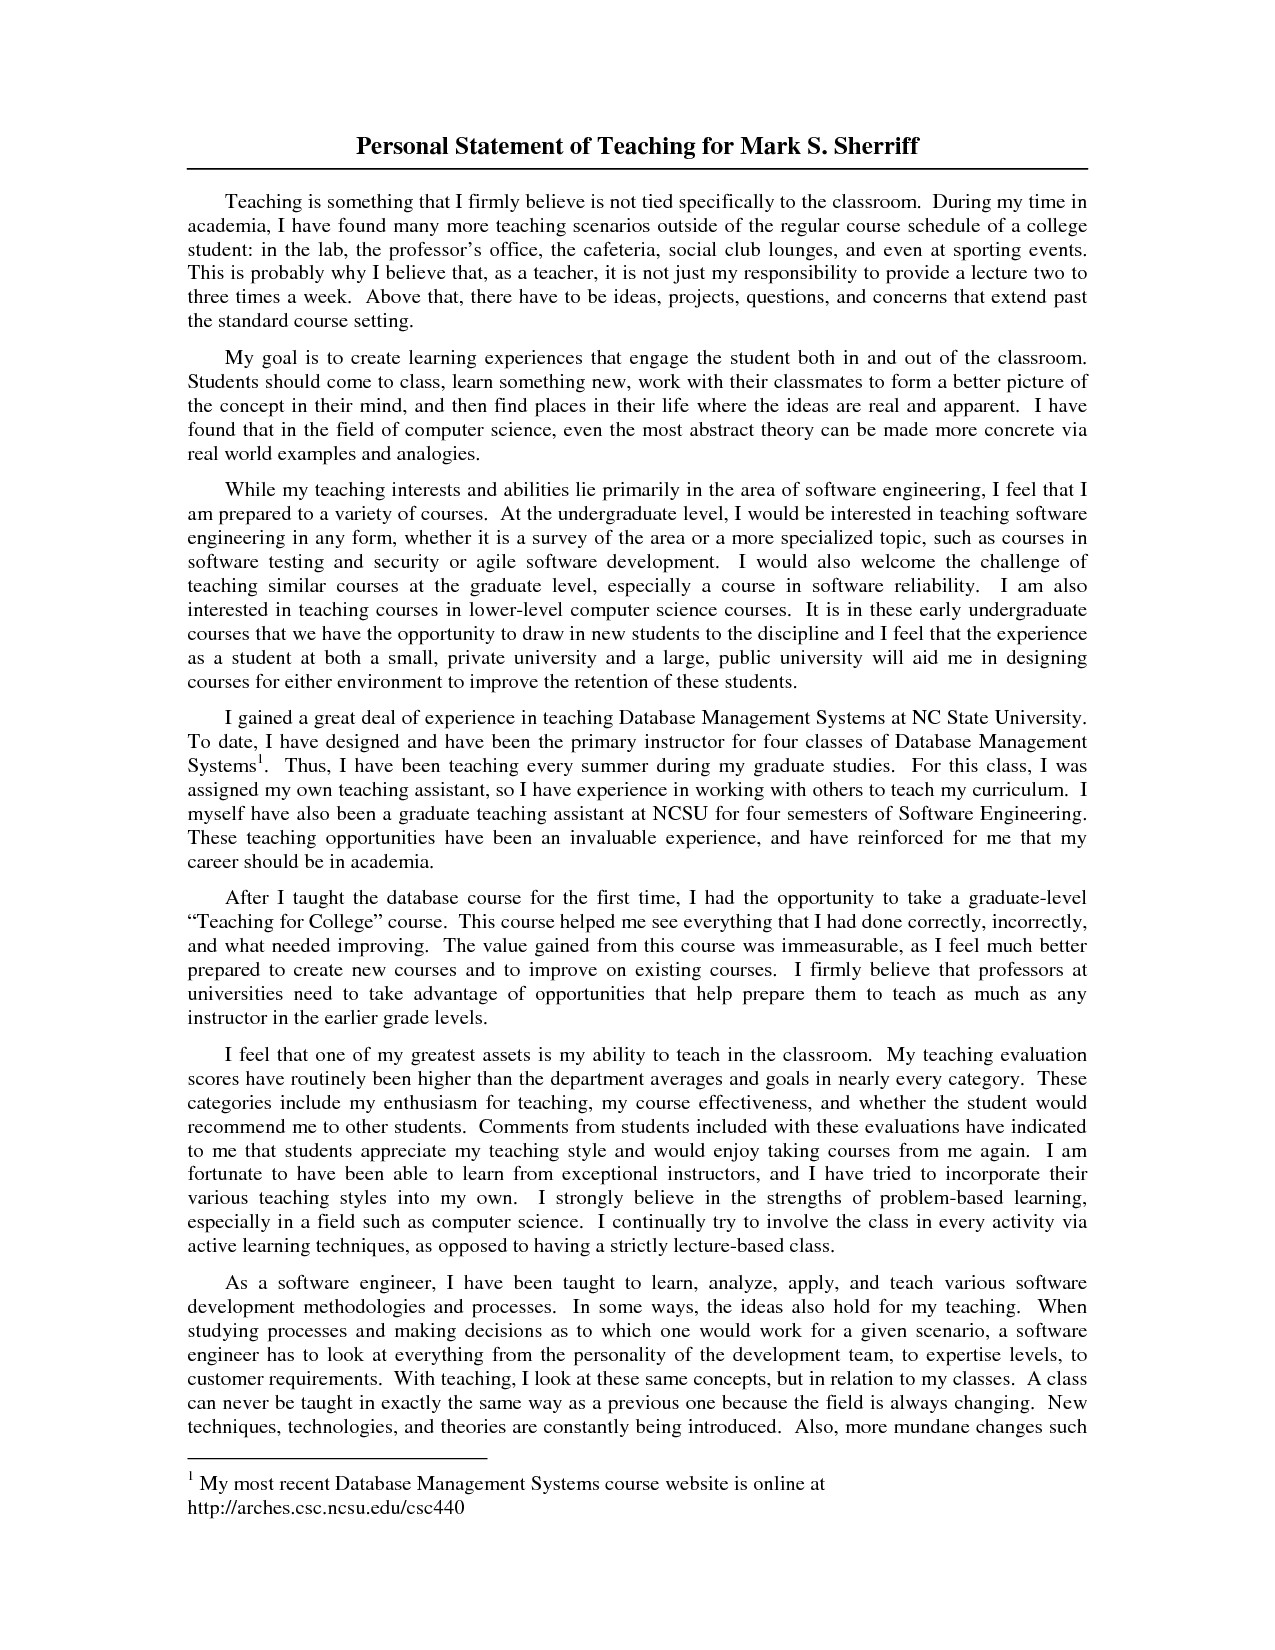 Personal Statement Template for Teaching Writing A Graduate Personal Statement